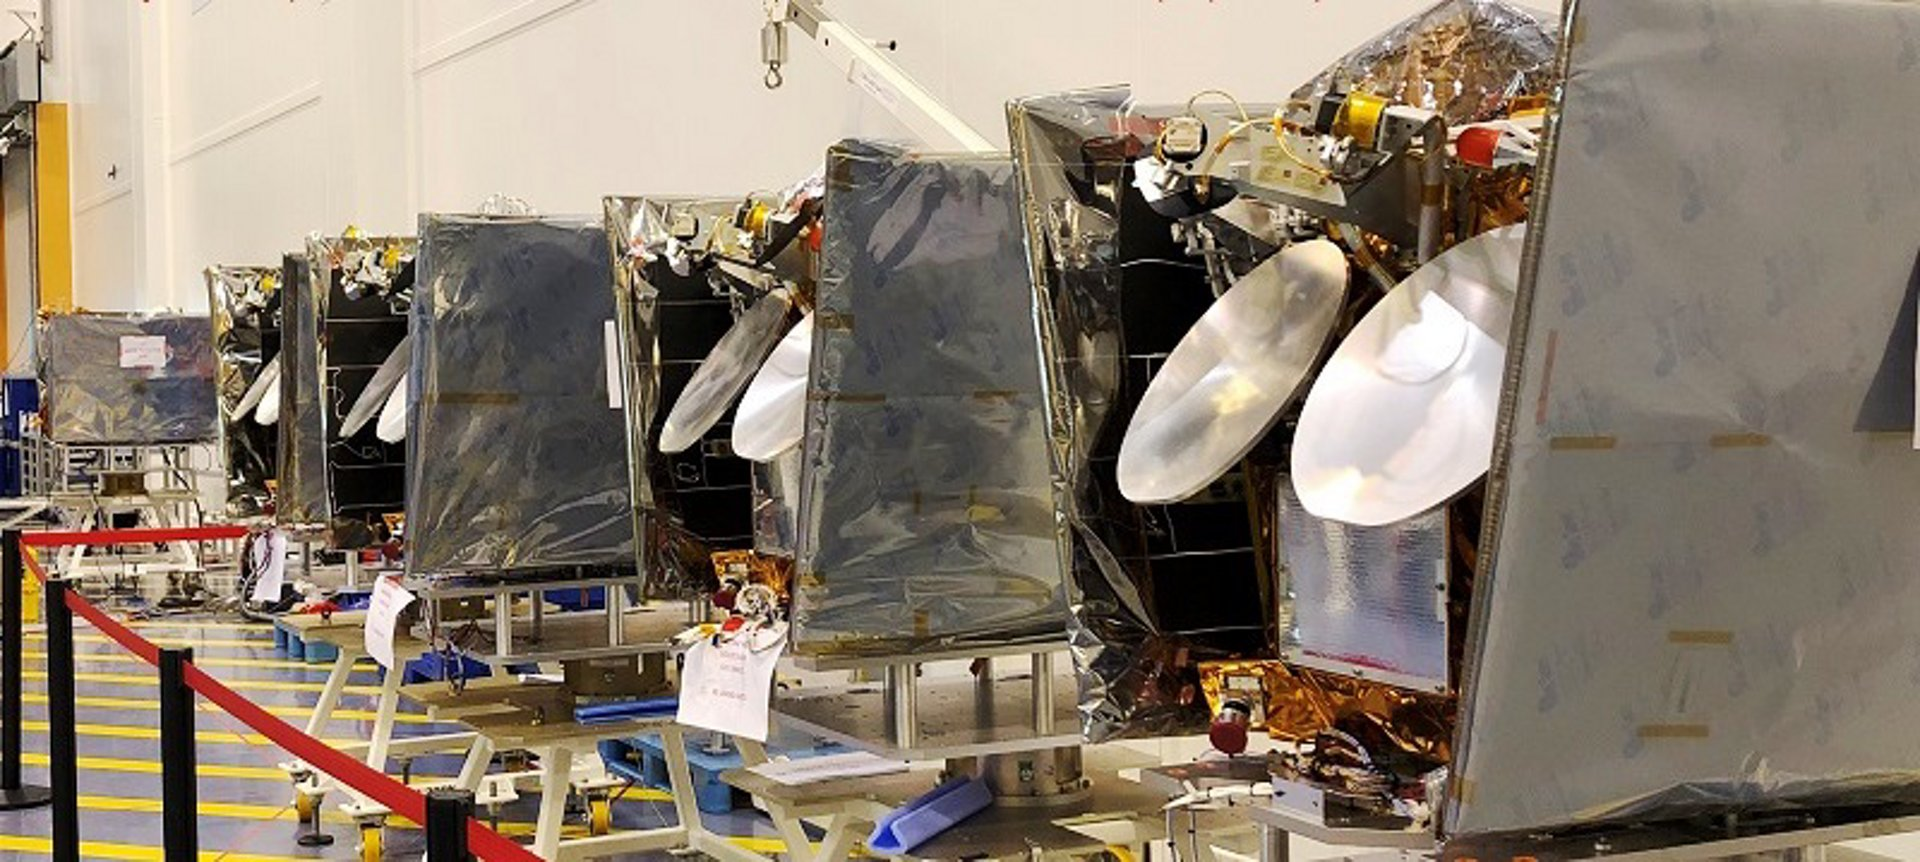 The first satellites aligned in the cleanroom at Airbus Toulouse site, ready for shipment